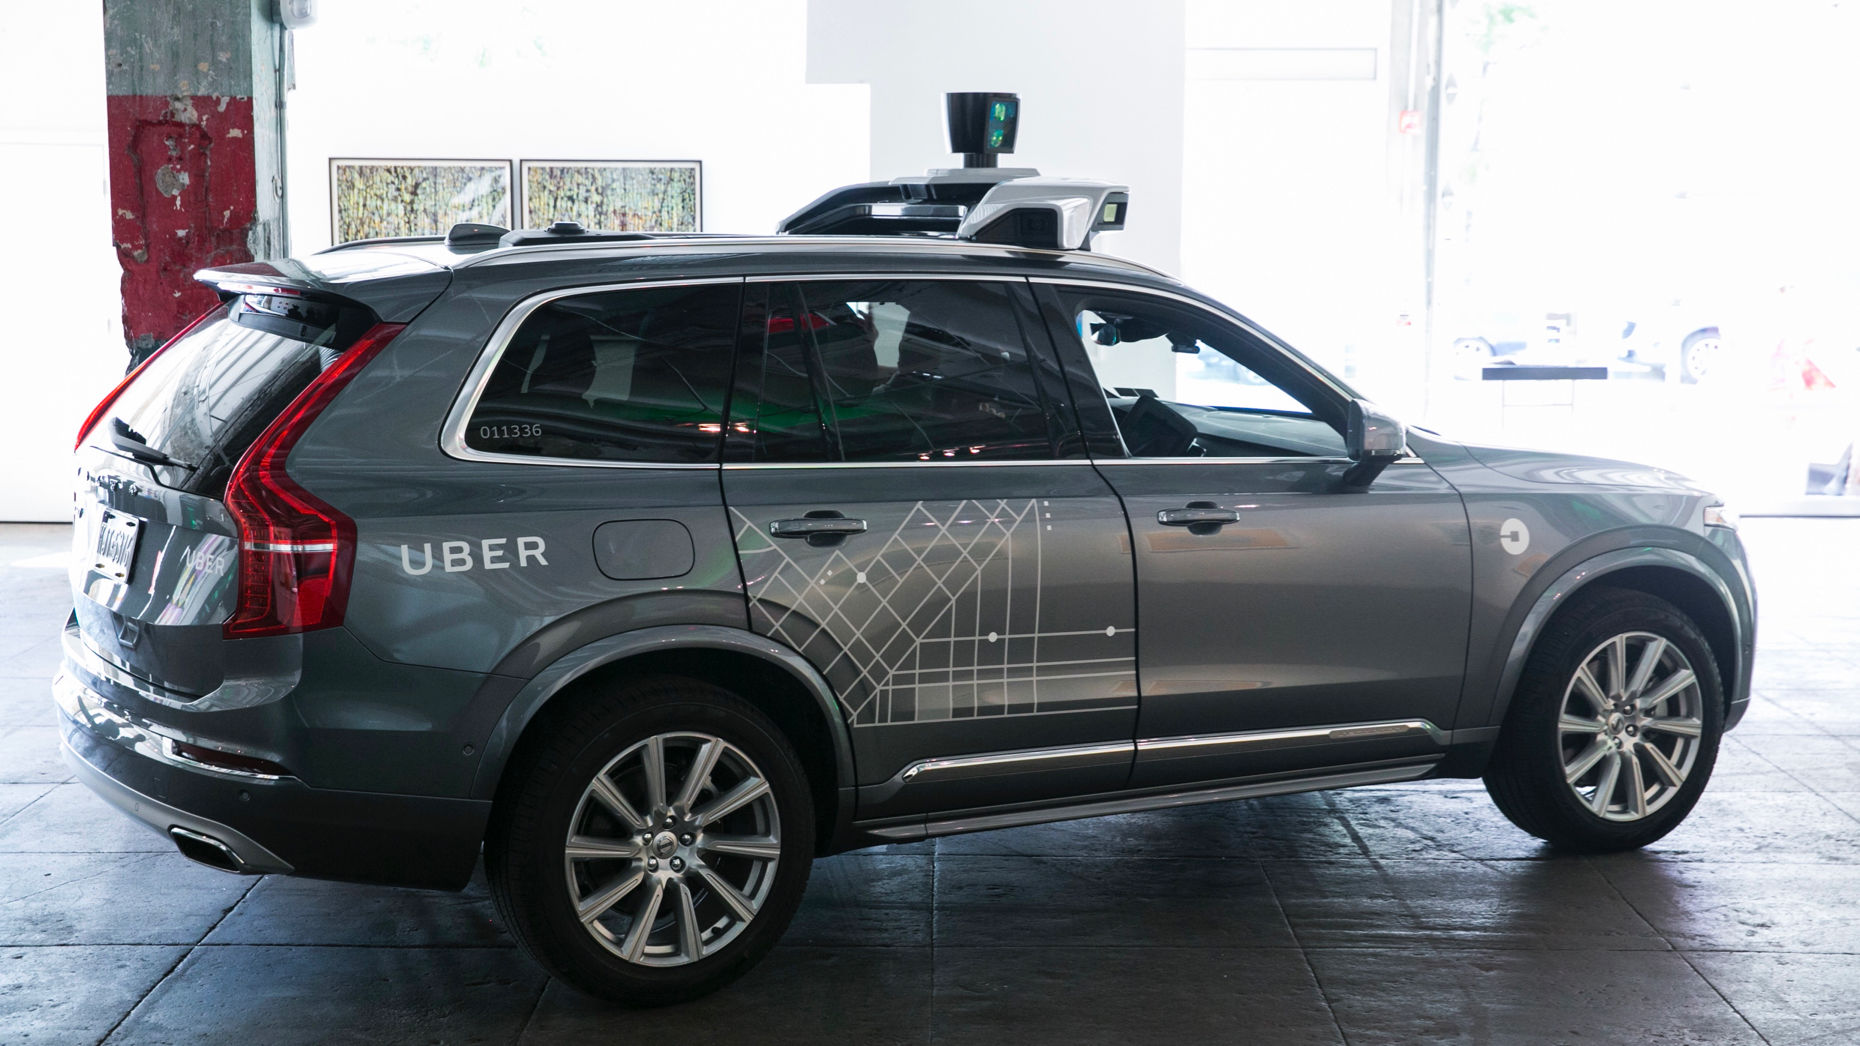 Uber Eyes Acquisition of Mighty AI for Self-Driving Car Effort